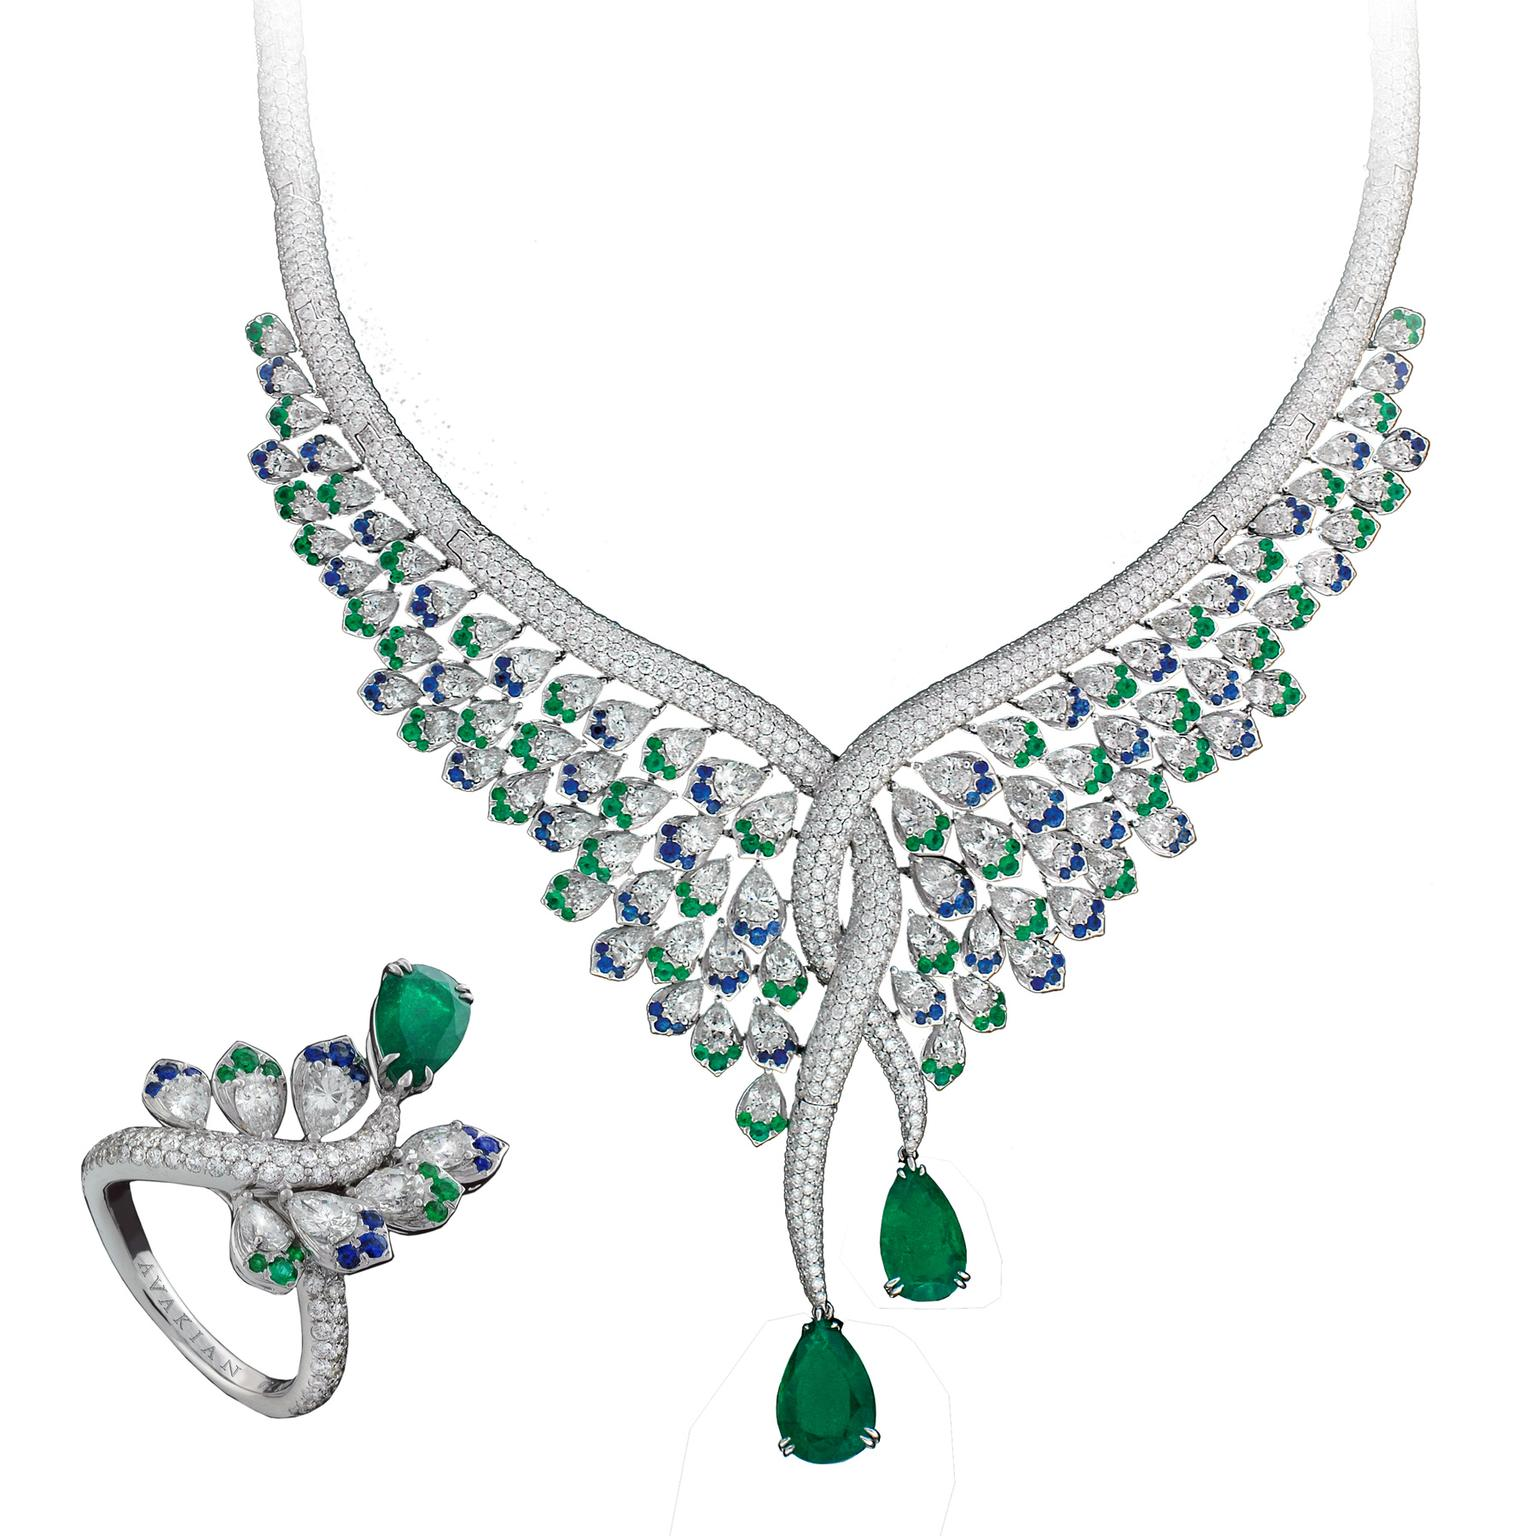 Emerald sapphire and diamond necklace and ring set